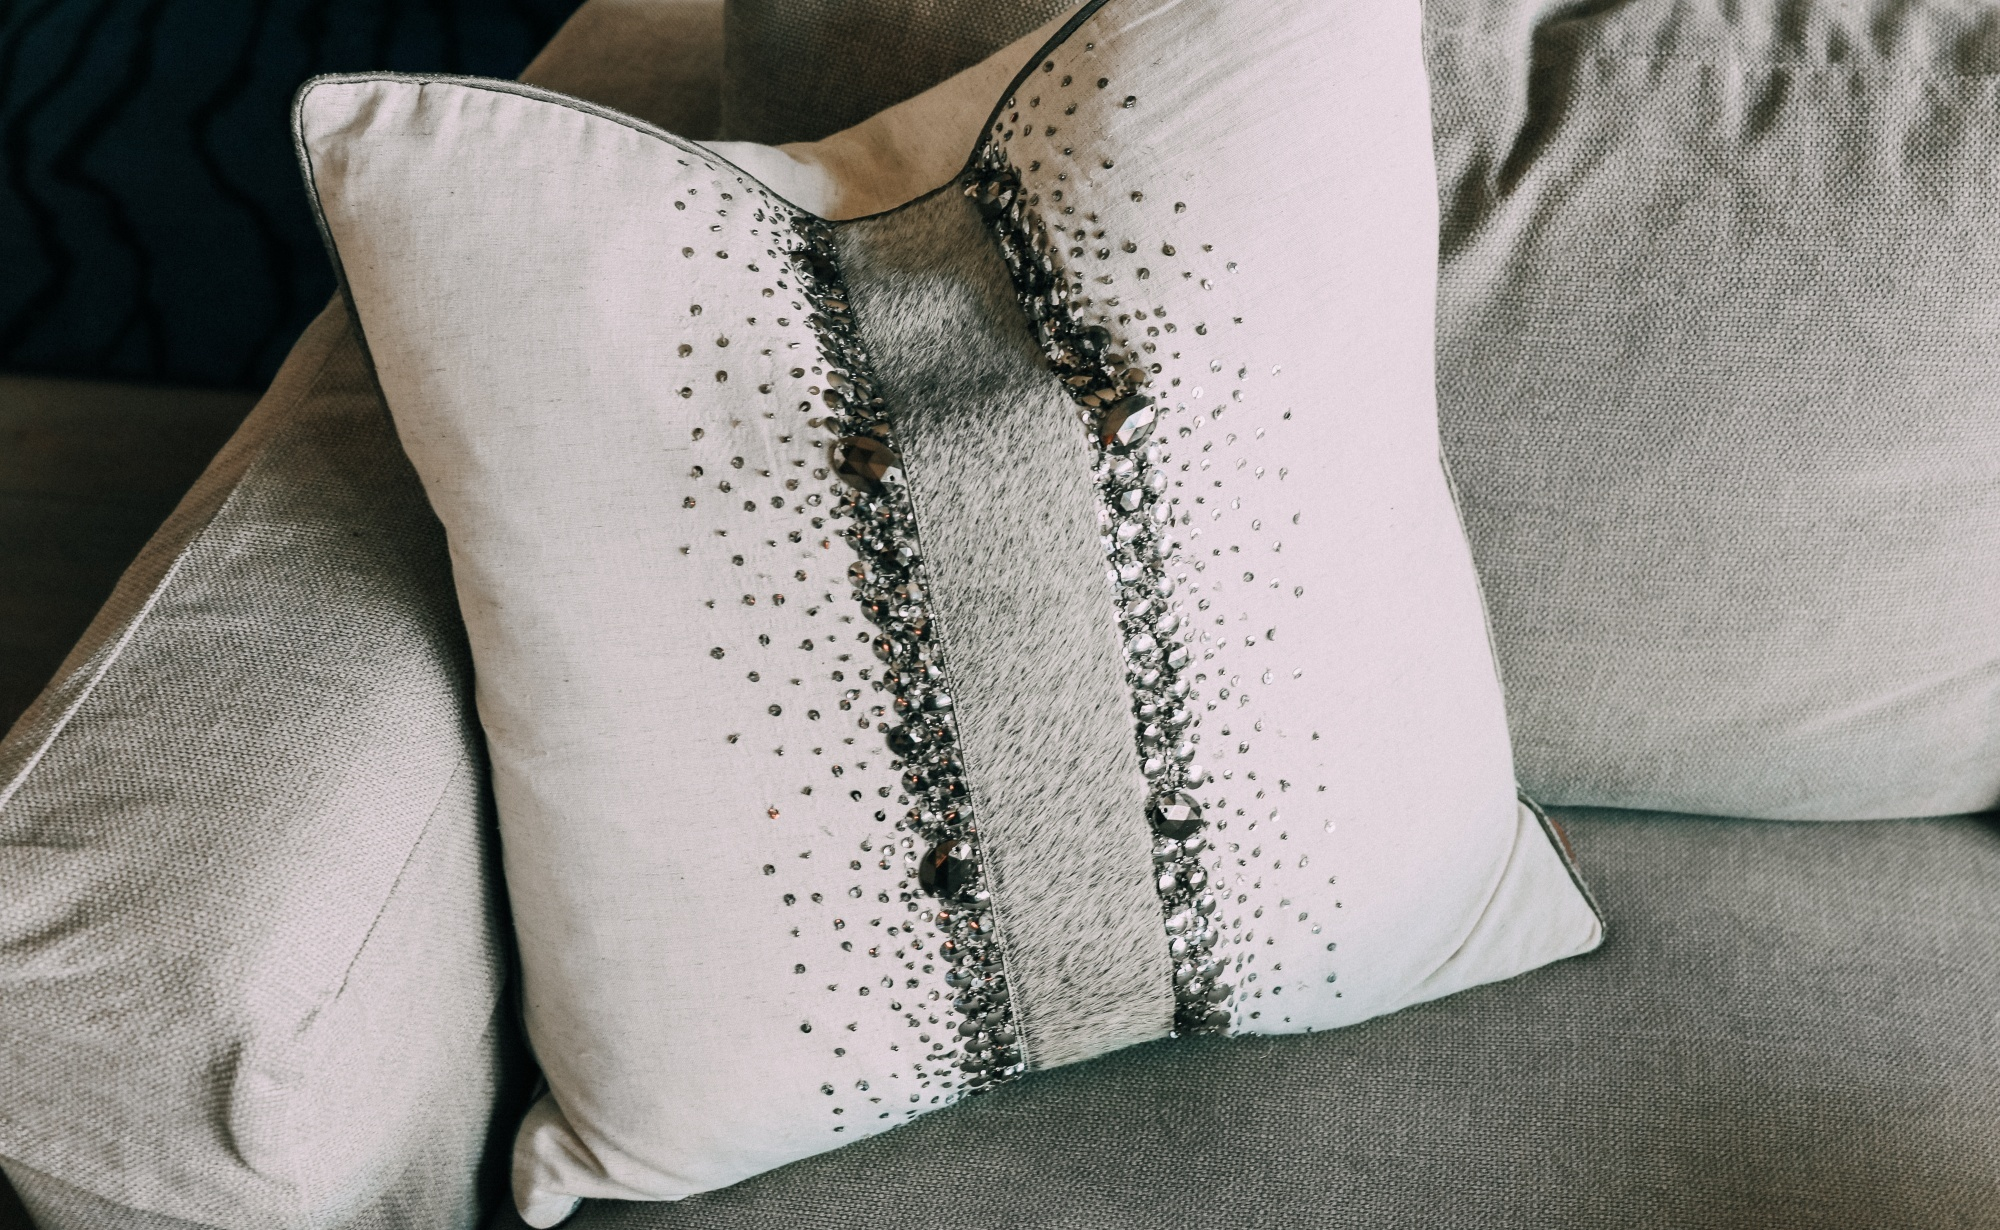 How To Make A Modern Home Cozy, Fashion blogger Erin Busbee of Busbee Style sharing her modern mountain home and how to make it cozy with pillows, personal touches, comfortable seating, house plants, and more! Including a sequin pillow from Clound9 Design in her home in Telluride, Colorado